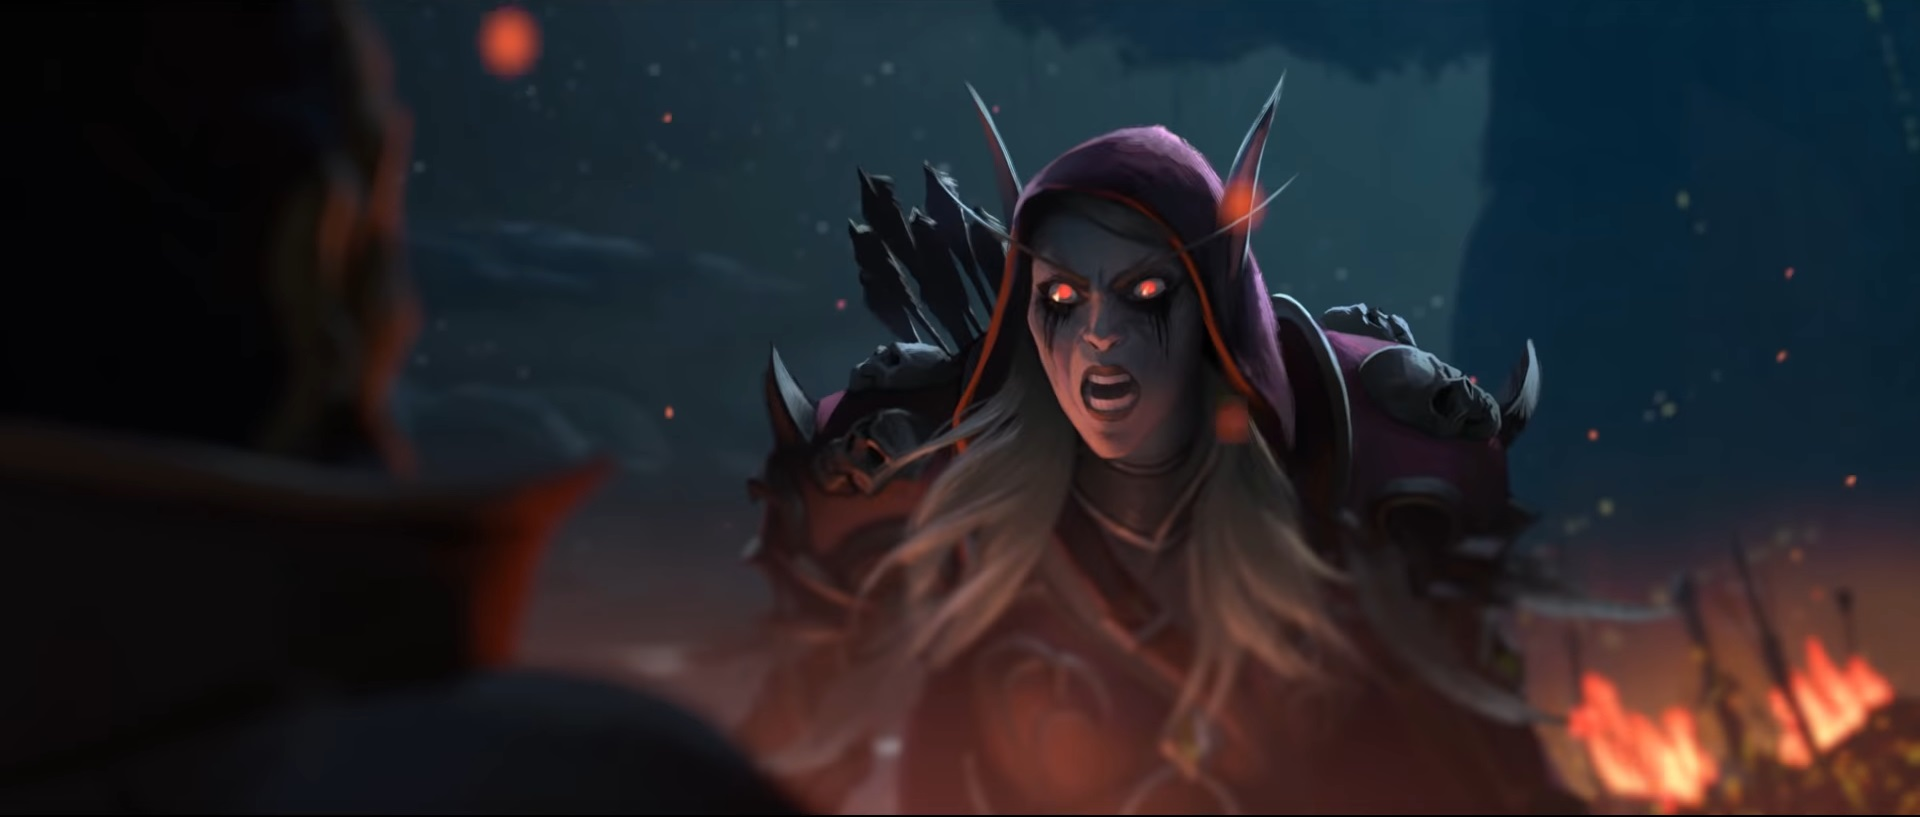 WoW Sylvanas Warbringer Screen 8